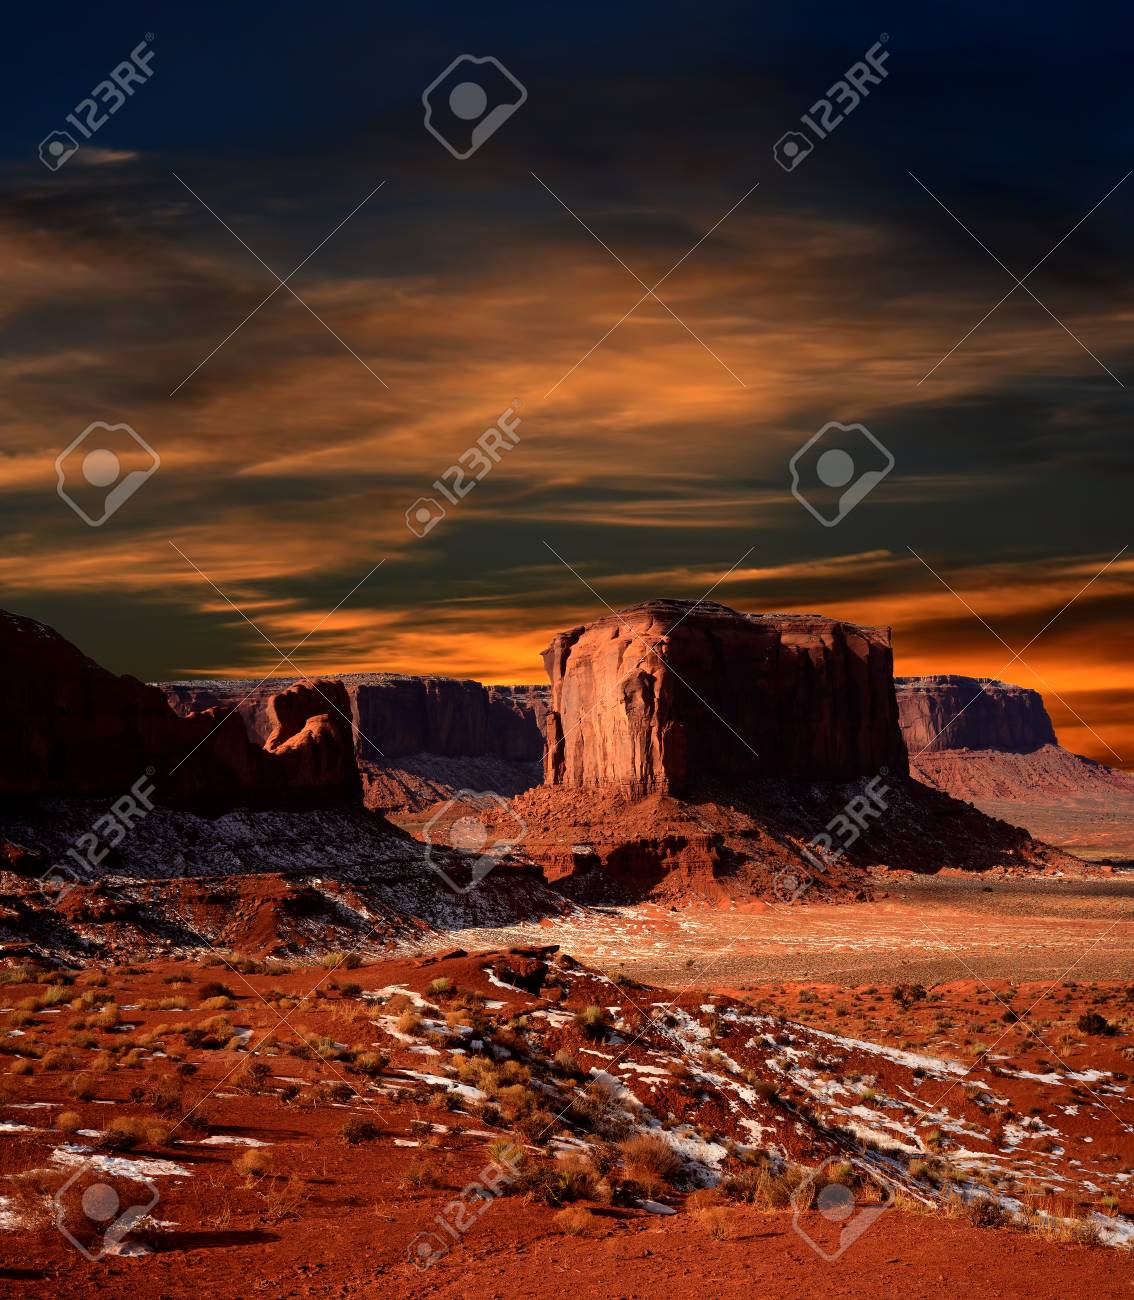 Sunset Monument Valley Arizona Site Of Many Cowboy Western Movies Stock Photo Picture And Royalty Free Image Image 54339256